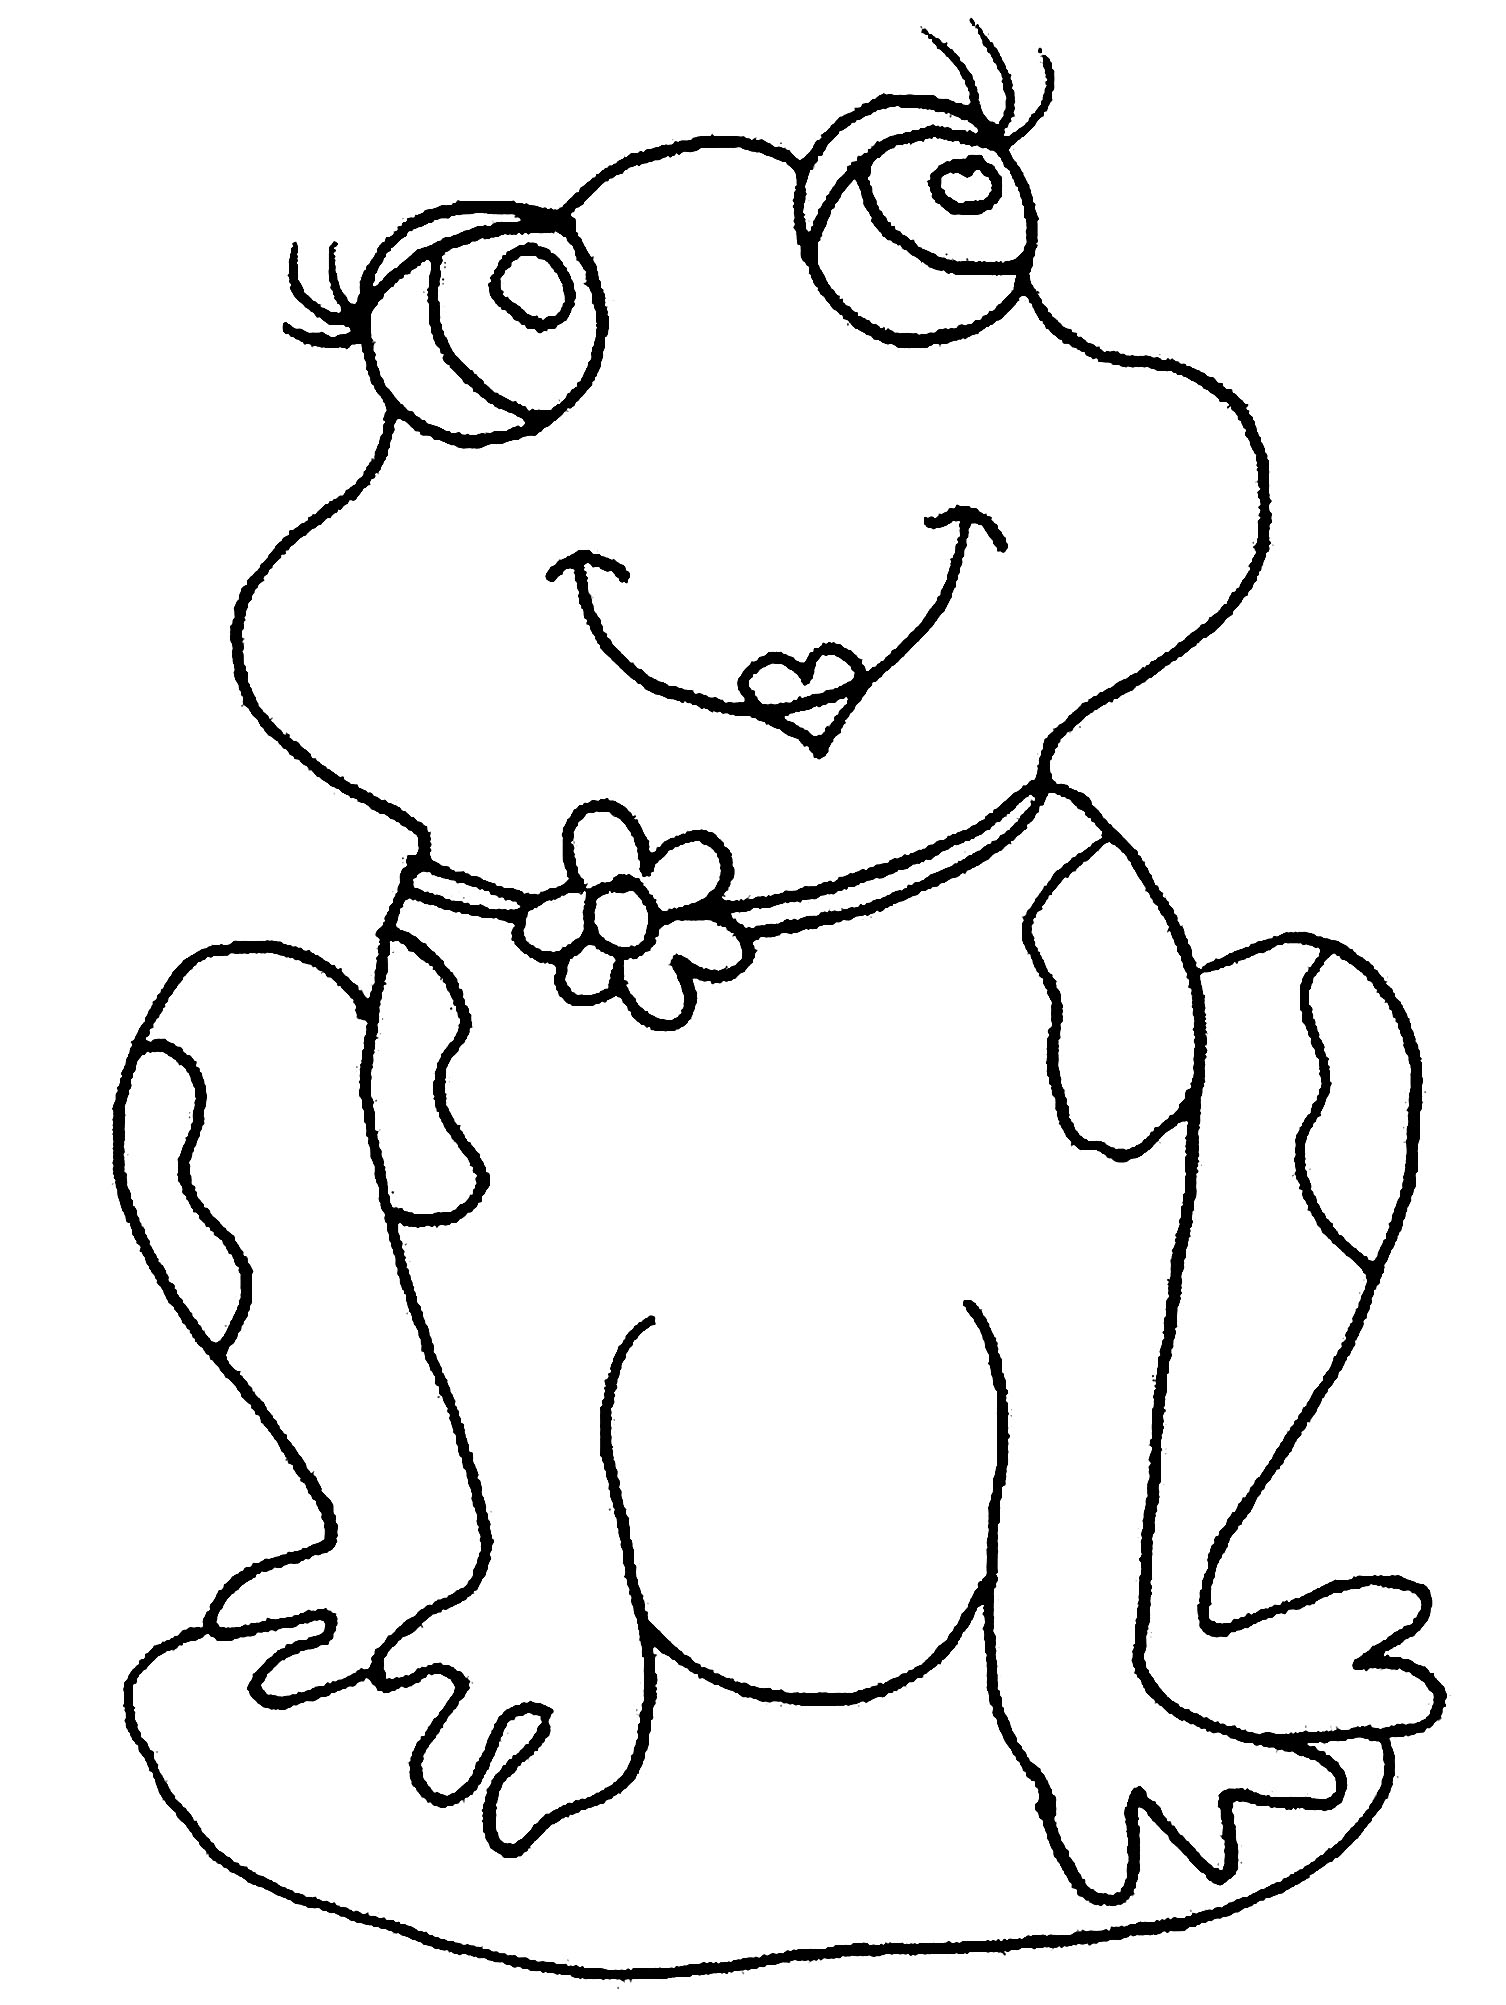 Easy free Frogs coloring page to download